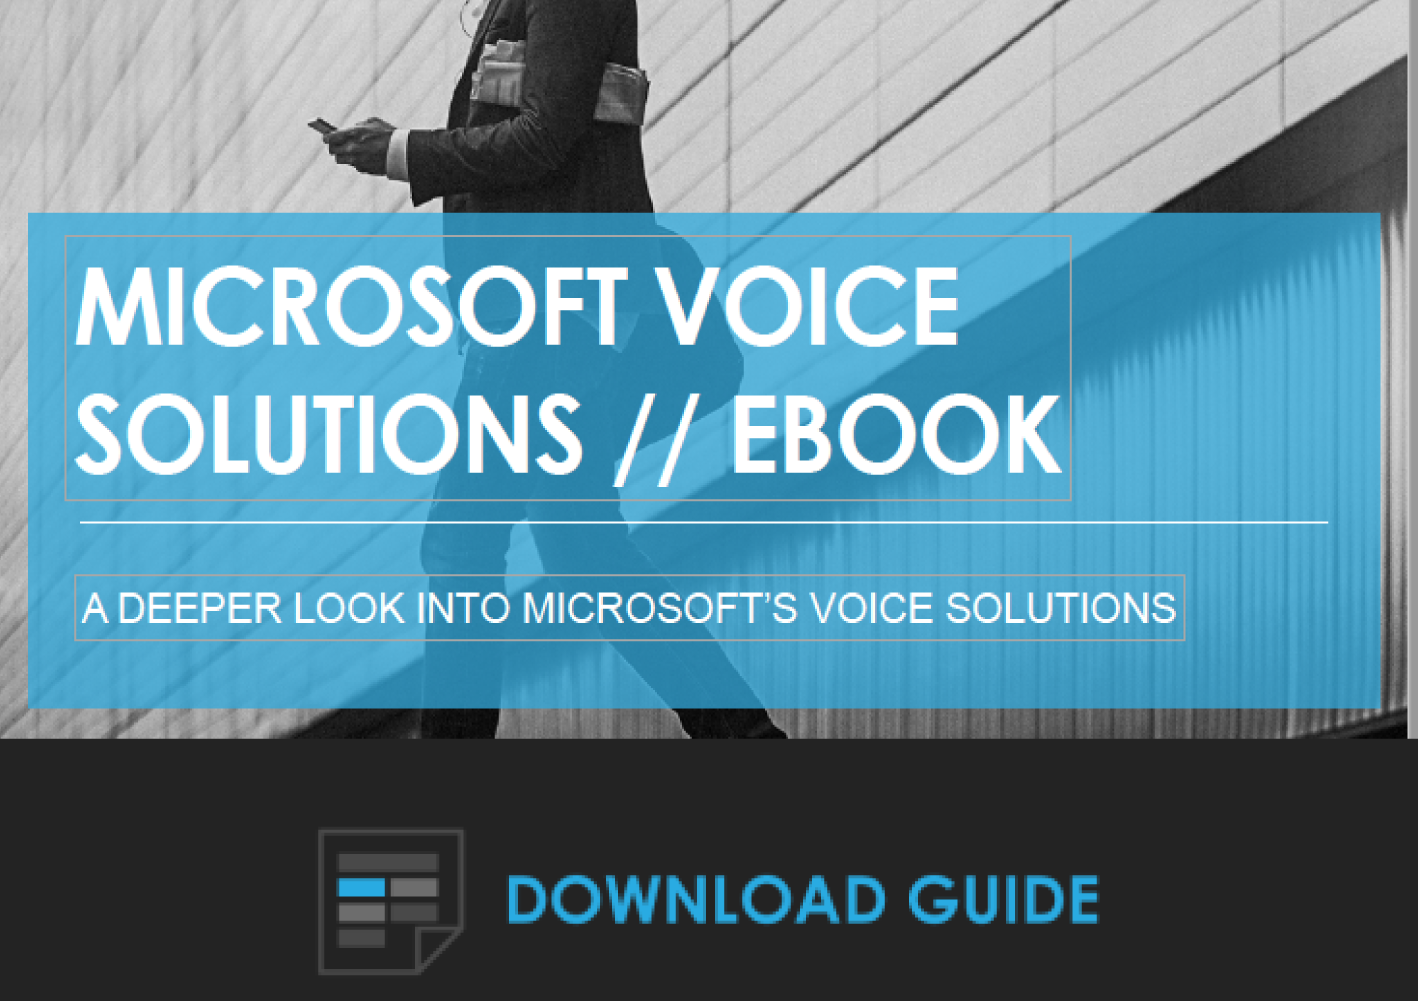 Microsoft Voice Solutions